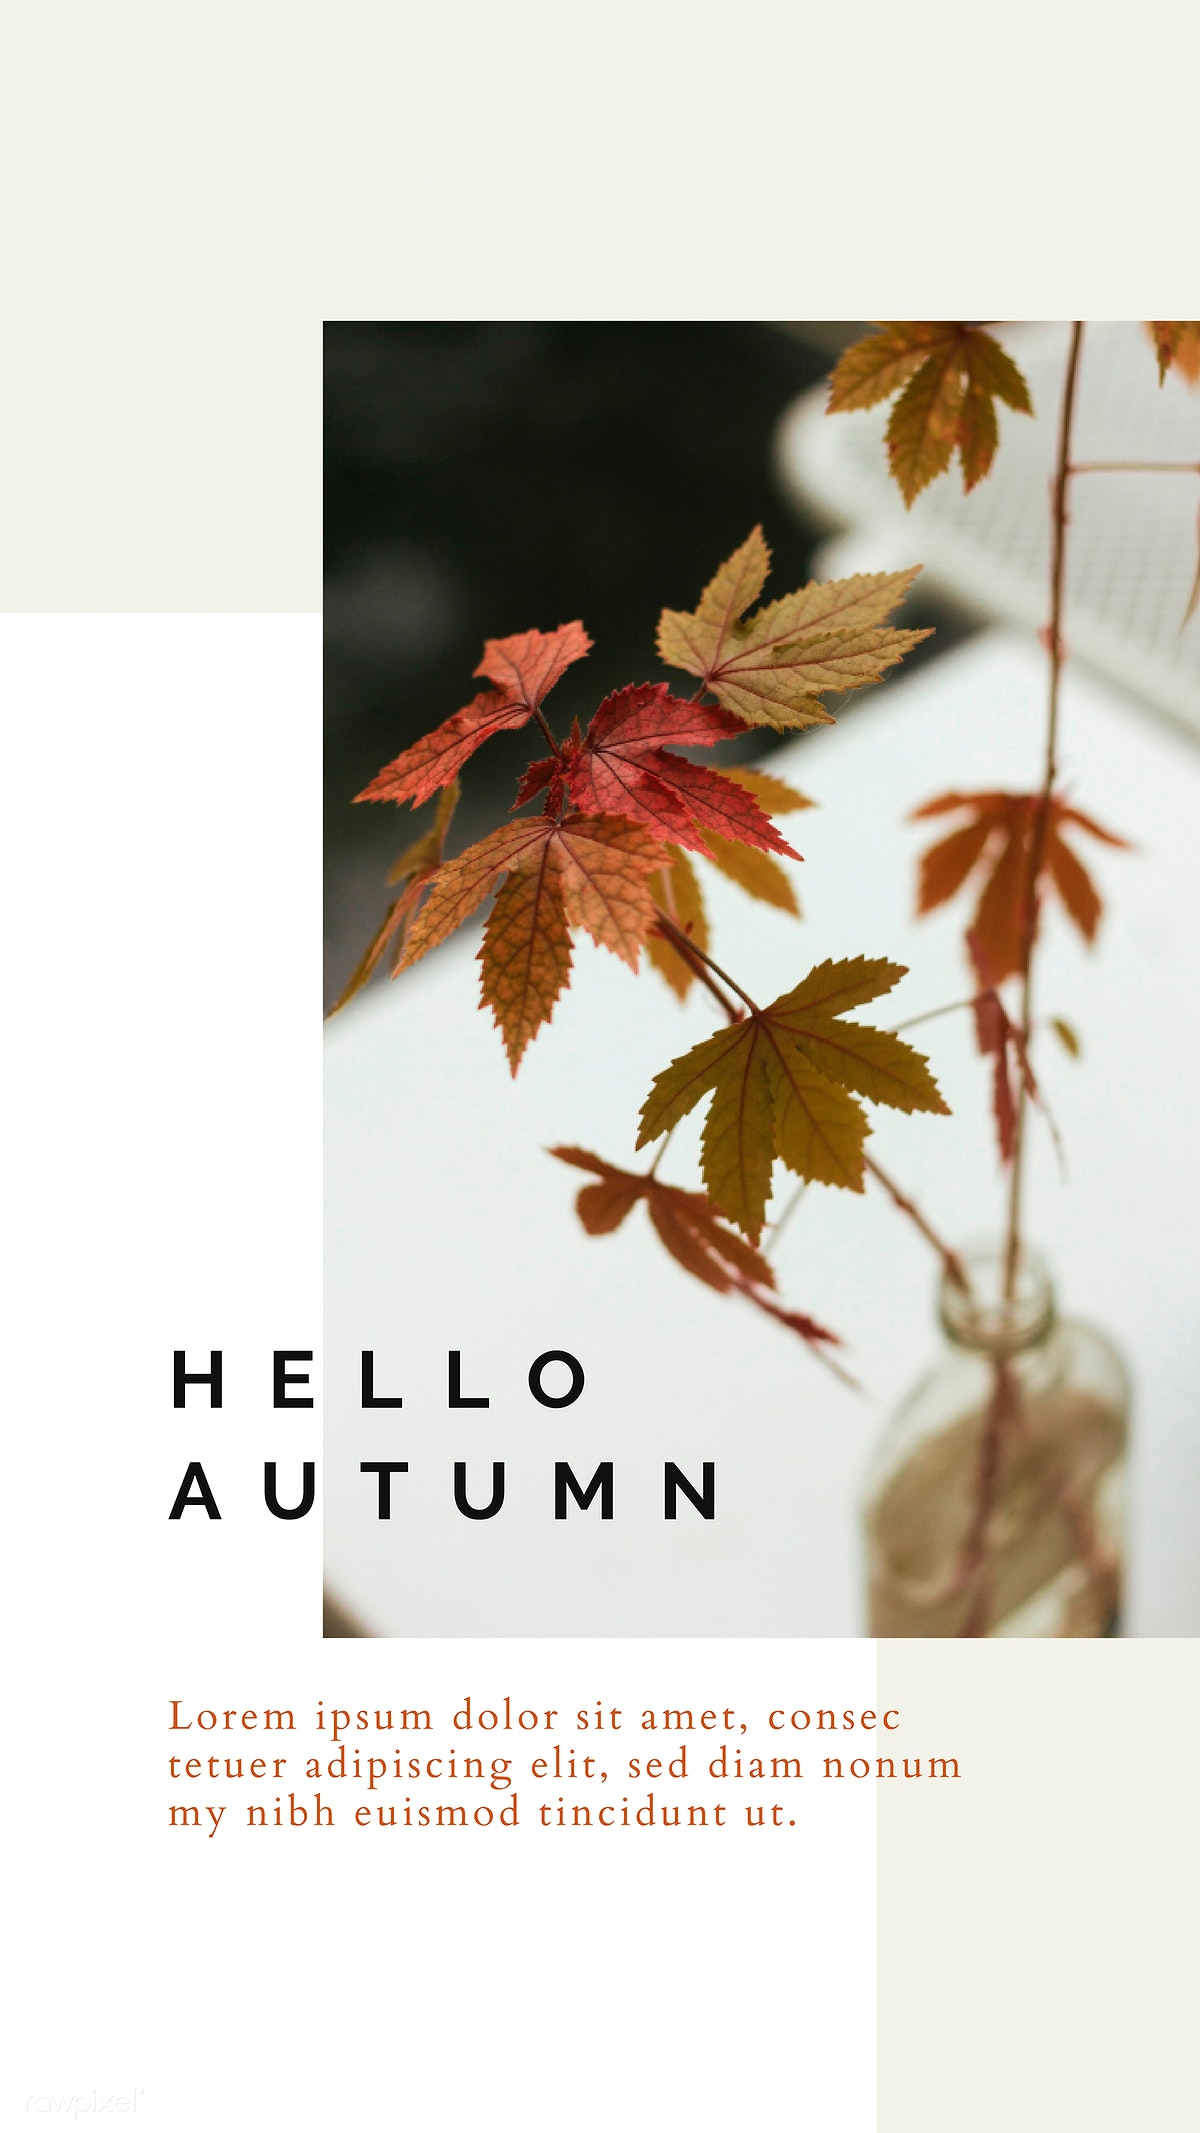 Download premium vector of Autumn color tone social media blog template